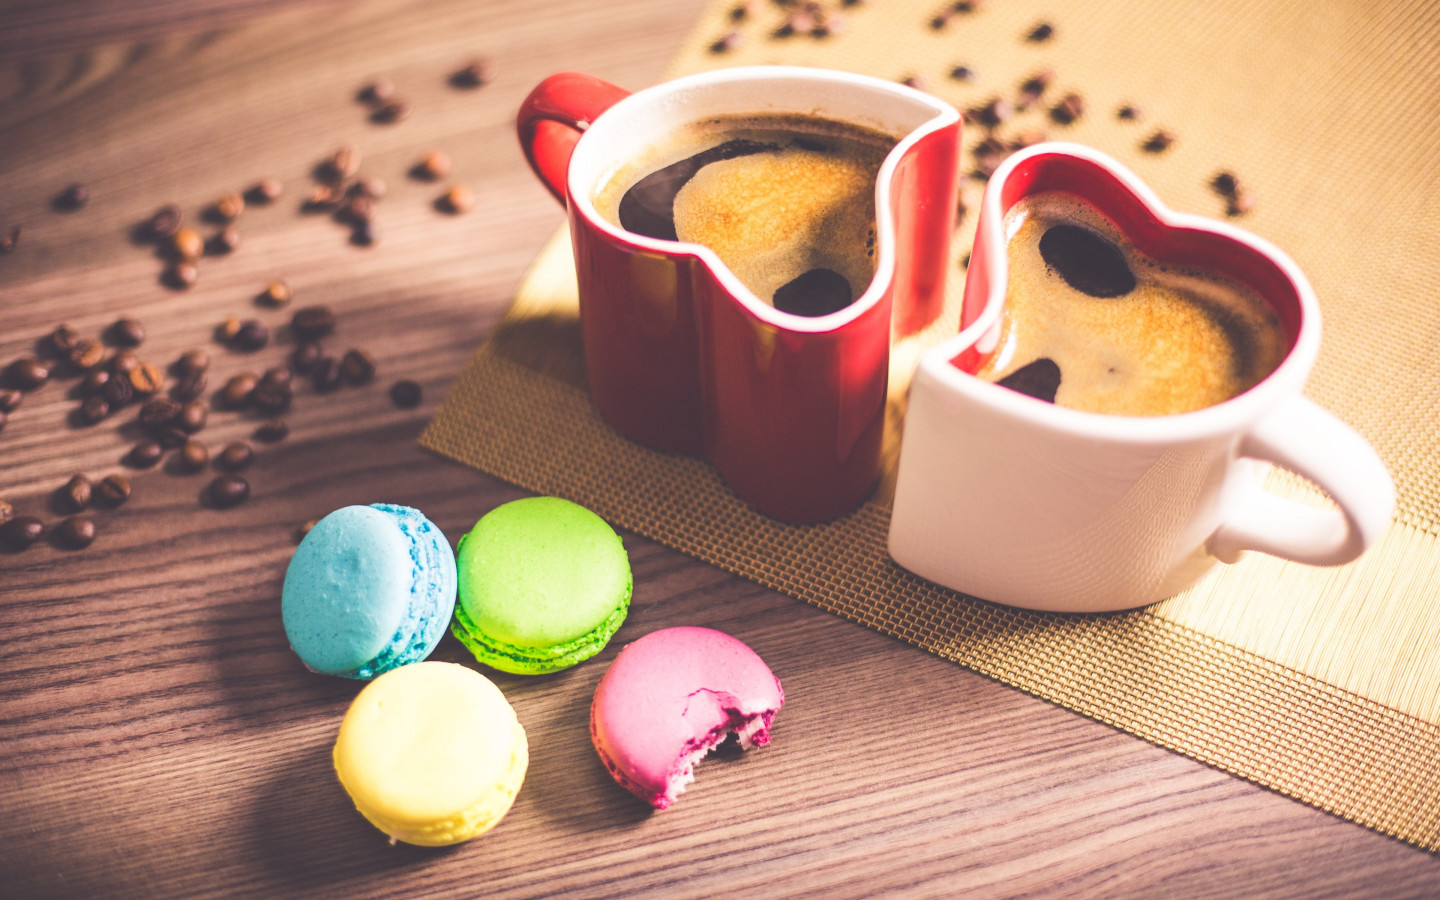 Coffee and macaroons wallpaper 1440x900